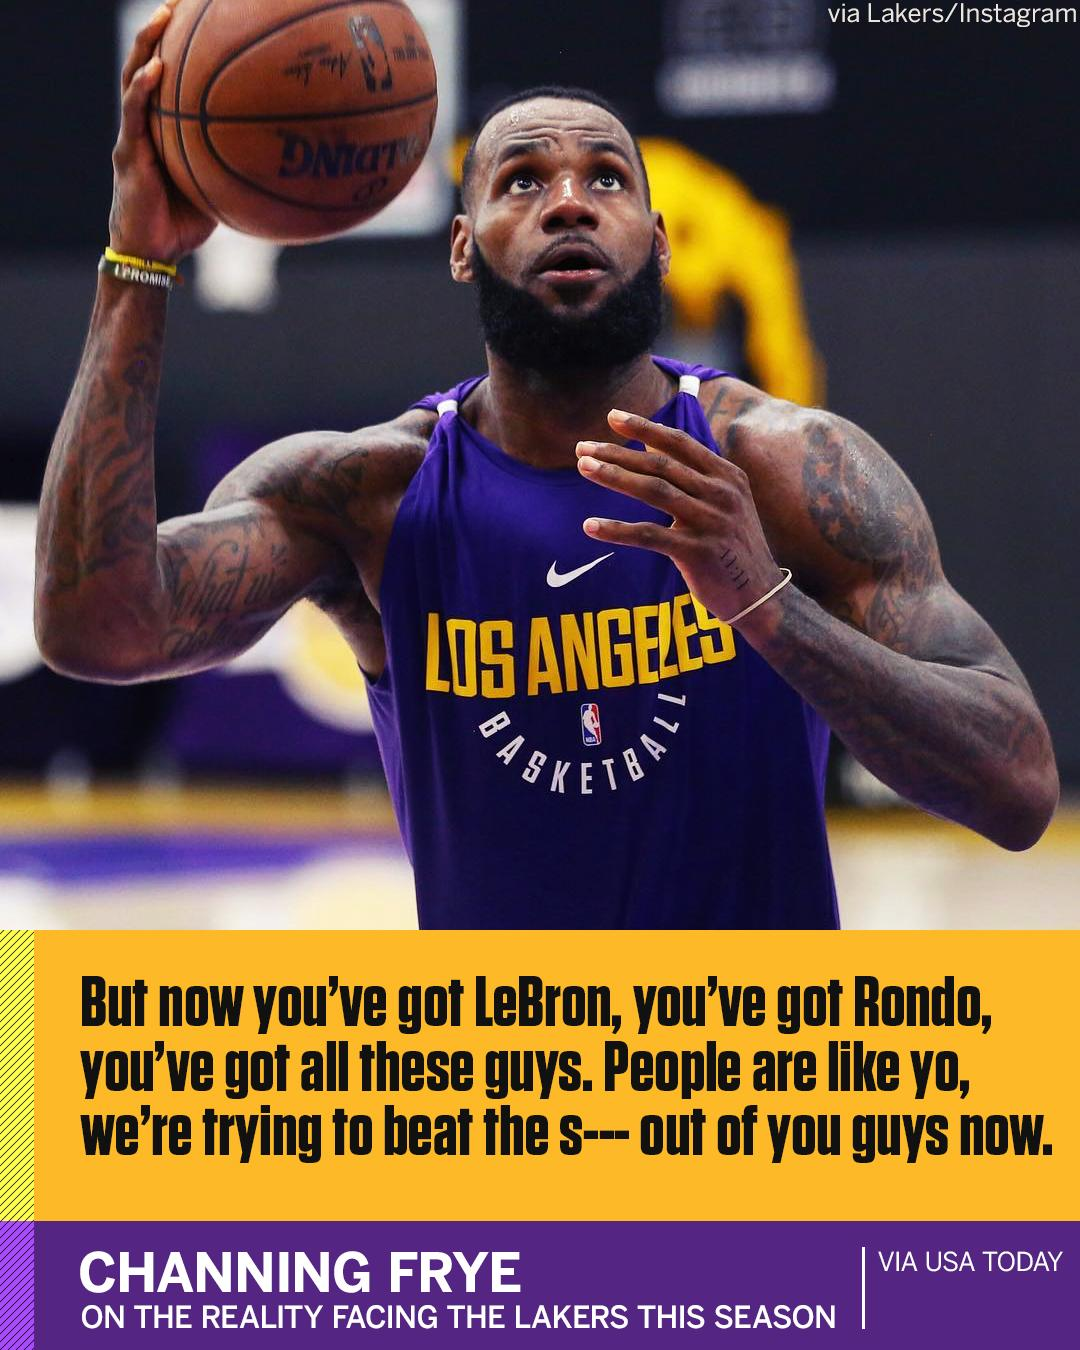 There could be a reality check in store for some members of the Lakers this season, according to Channing Frye. https://t.co/taVl49TDti